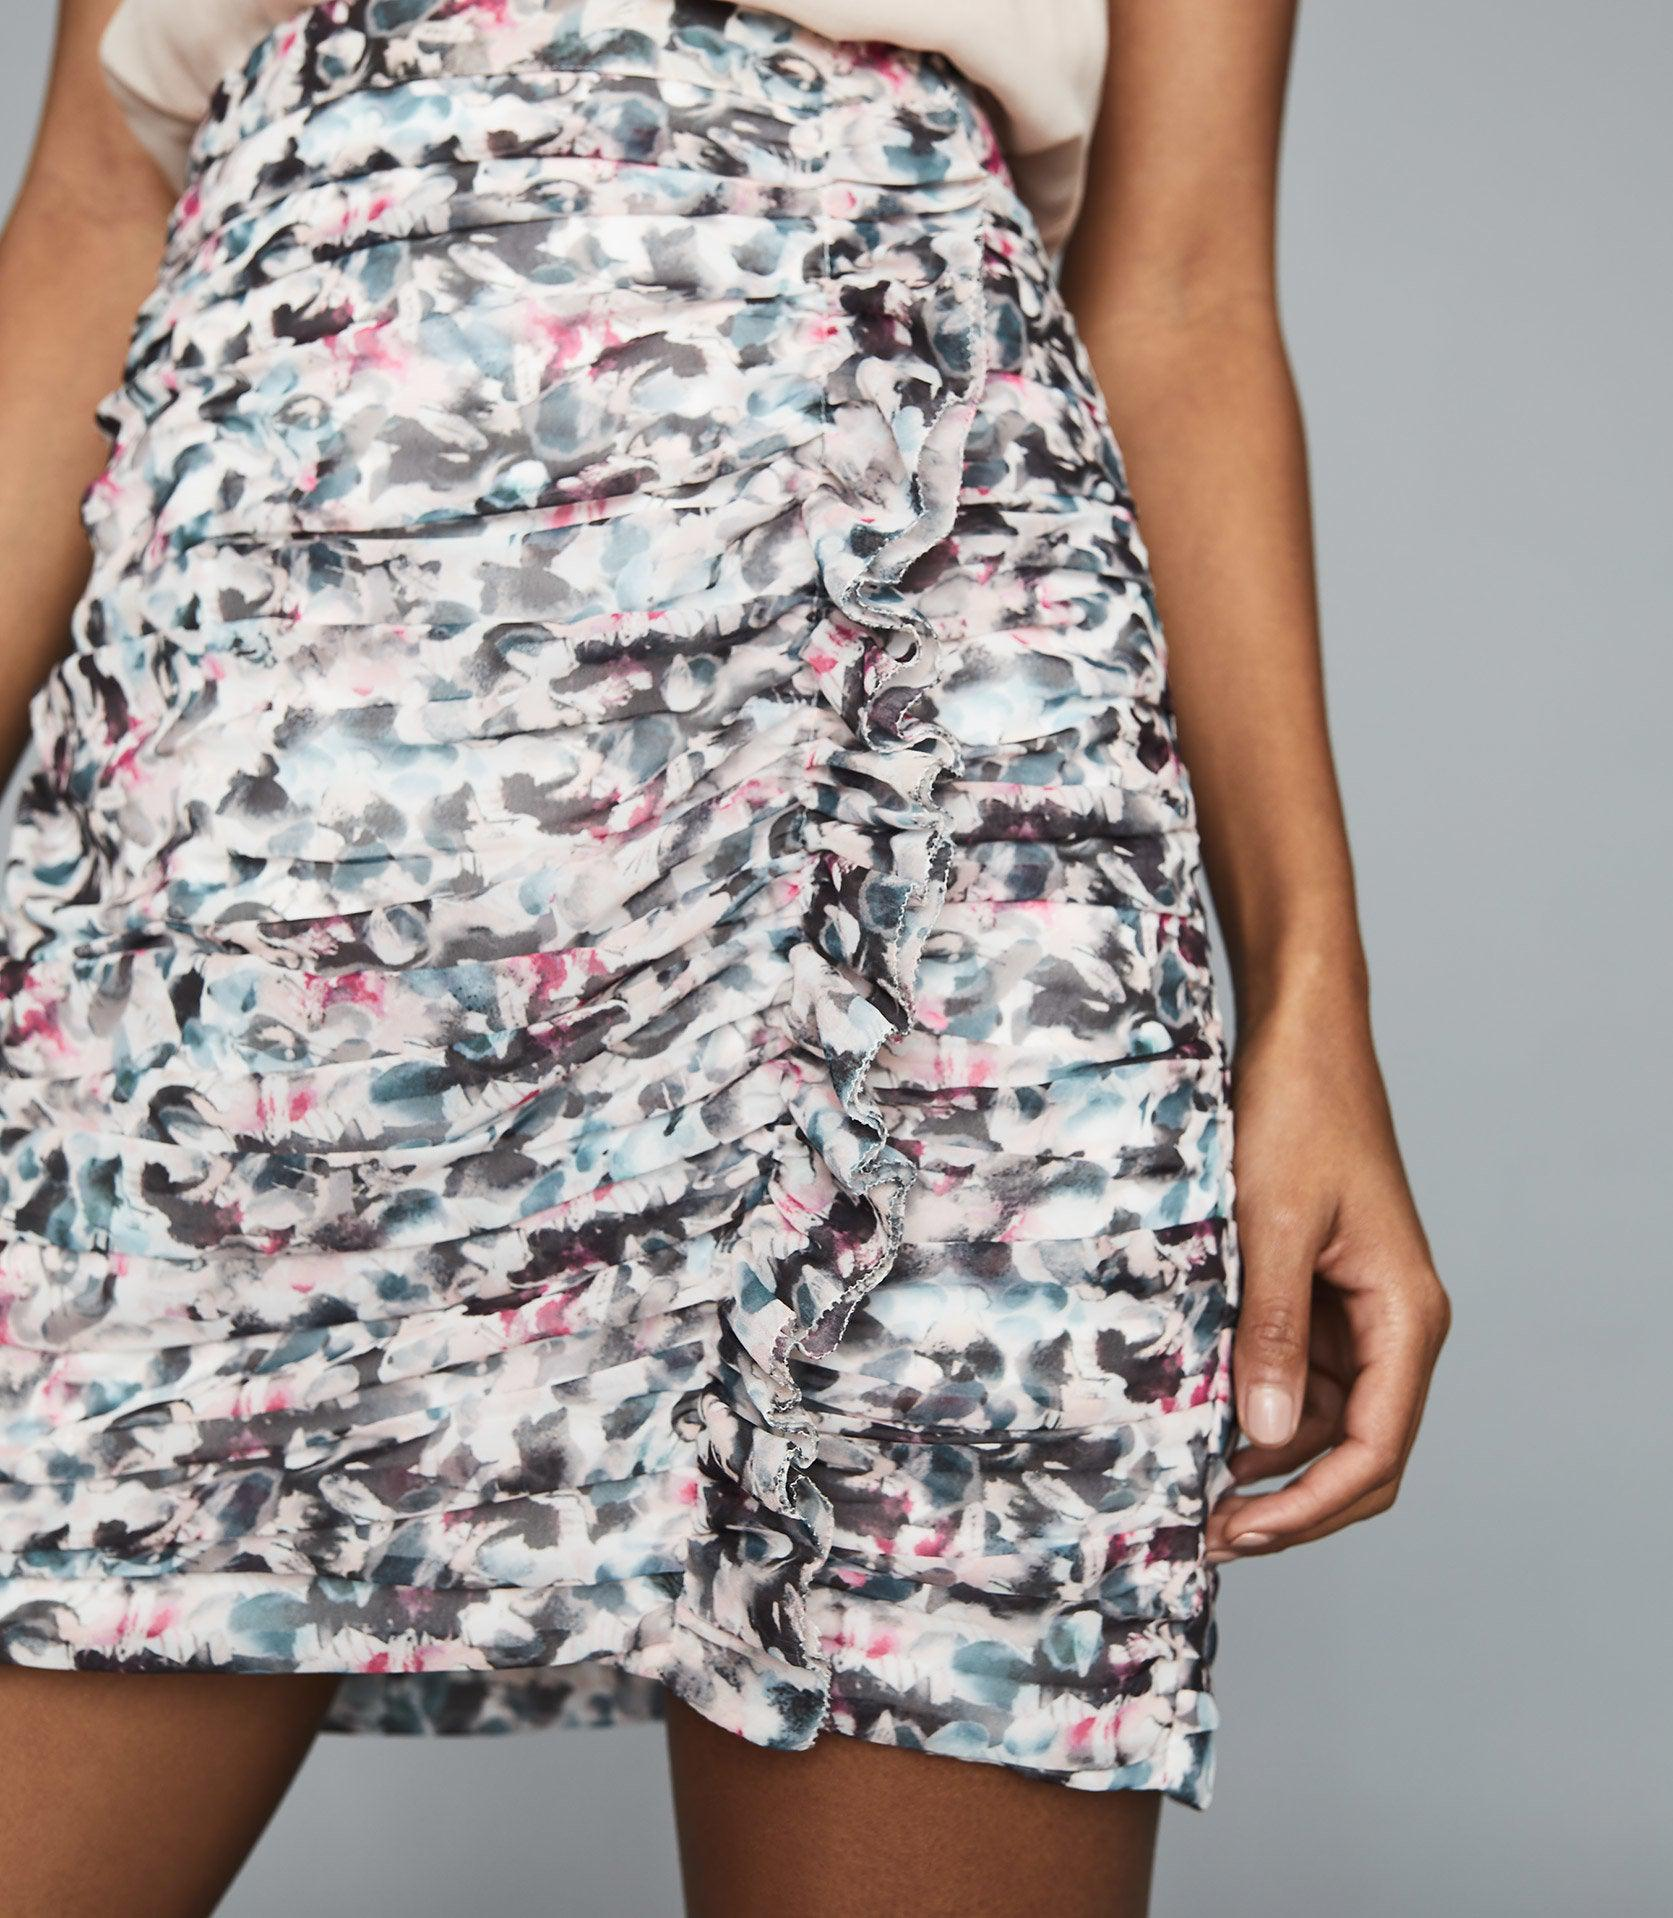 LUCIELLE - FLORAL PRINT RUCHED MINI SKIRT 2